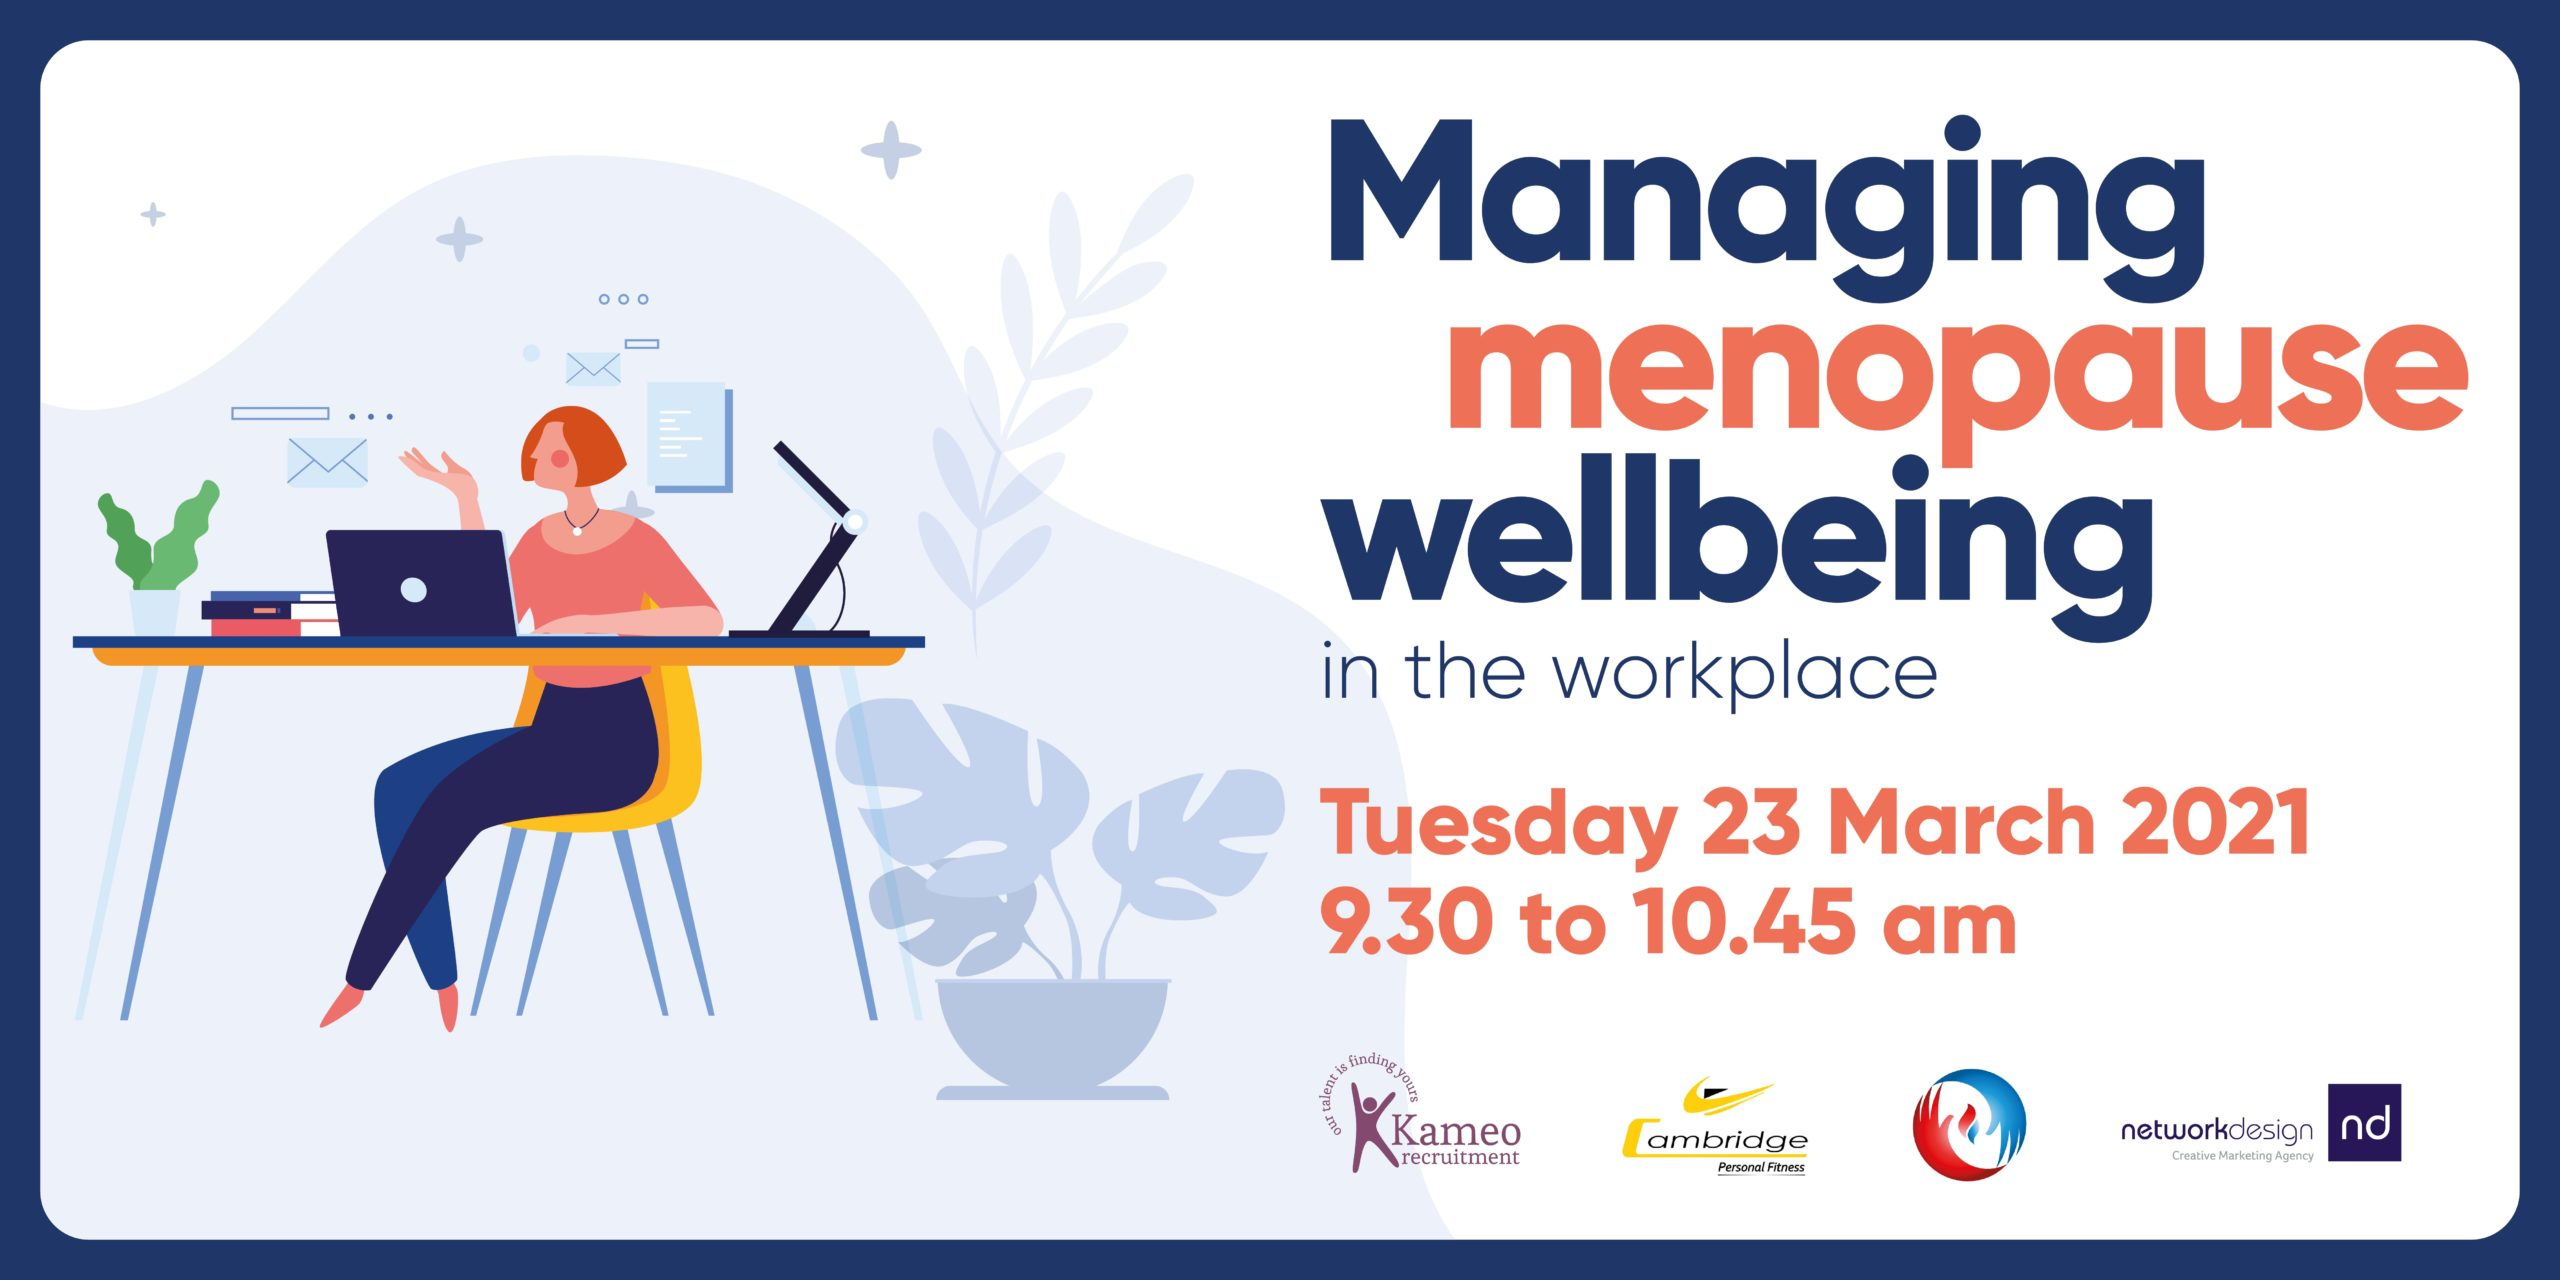 Managing menopause wellbeing in the workplace